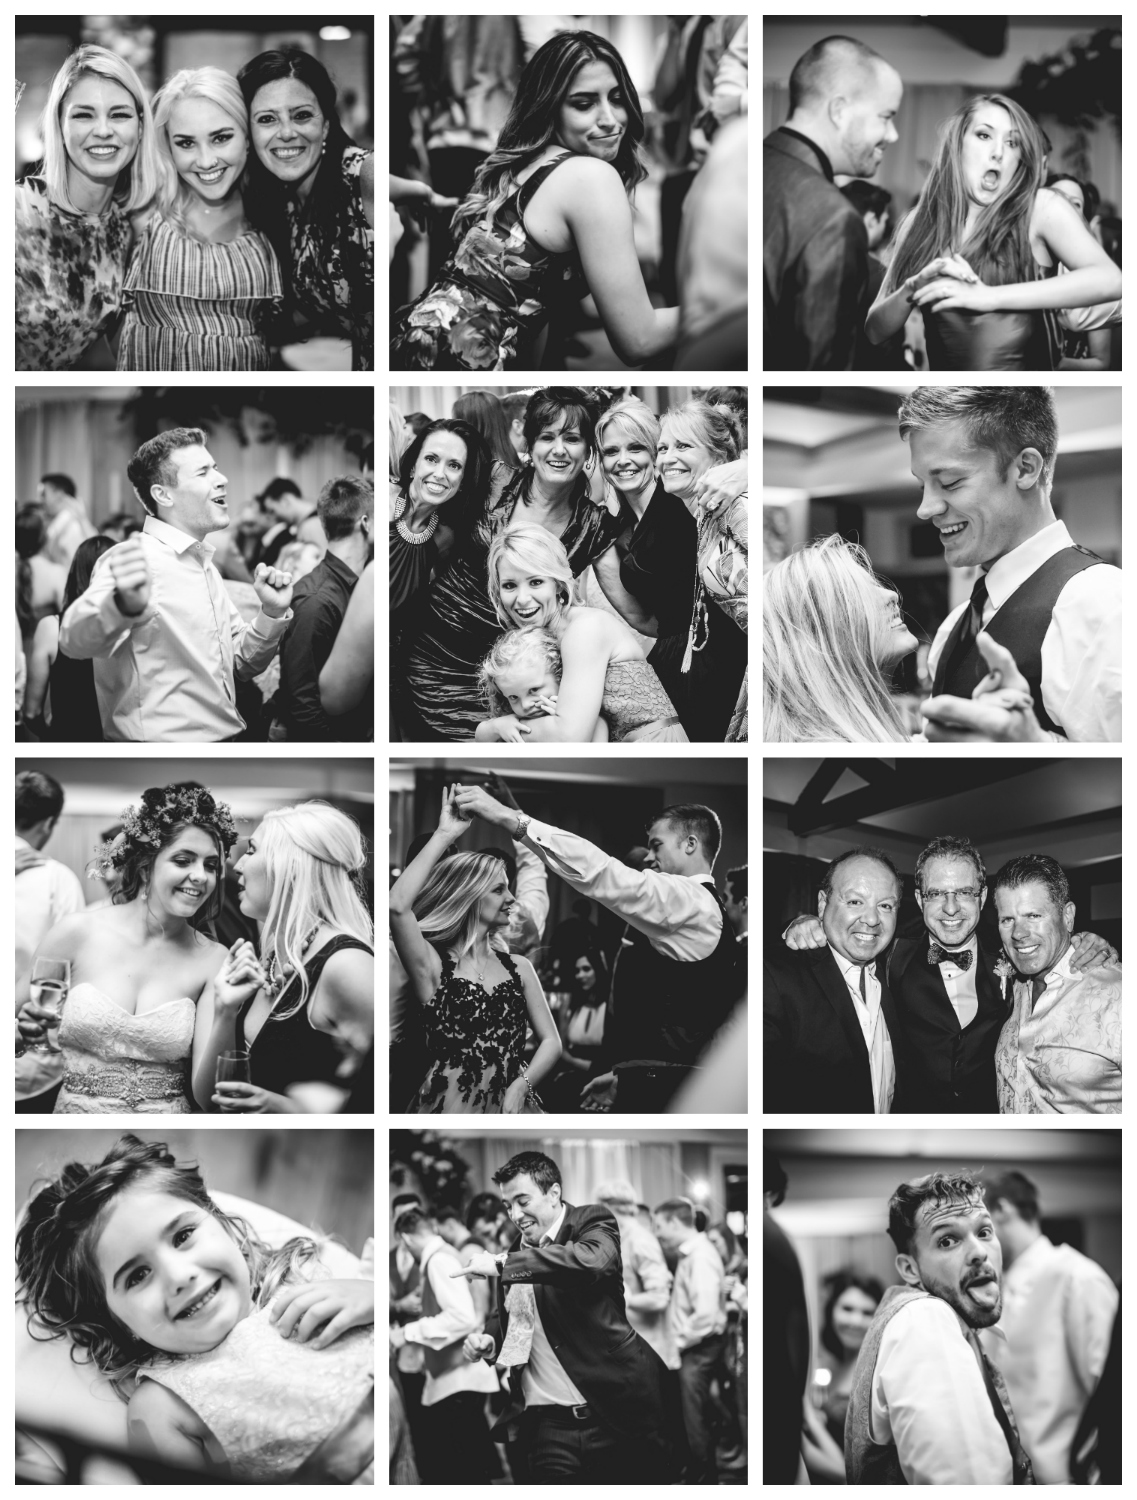 Wedding Reception pictures.   Photographed by JMGant Photography, Denver Colorado wedding photographer.